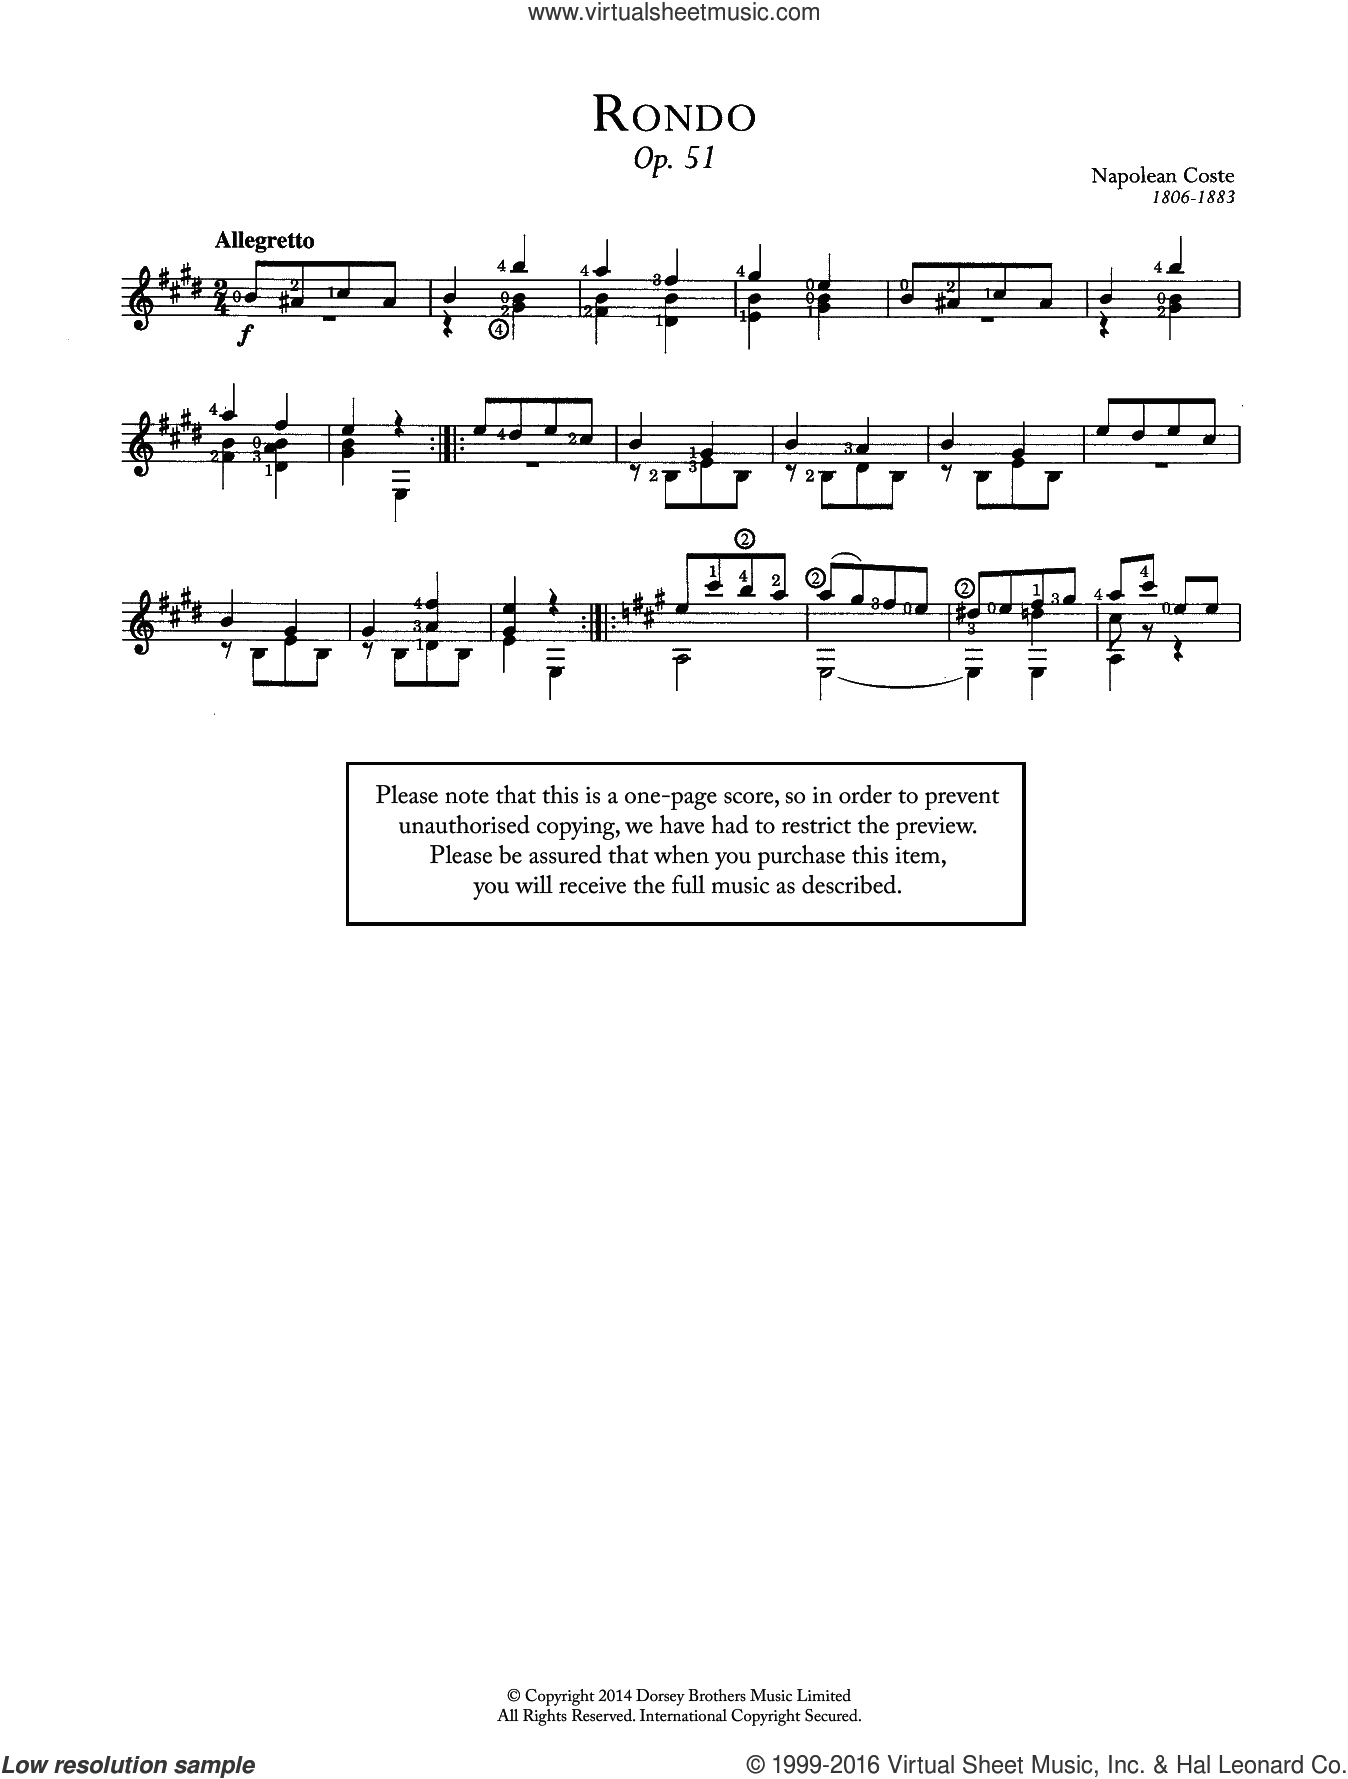 Rondo, Op.51 sheet music for guitar solo (chords) by Napoleon Coste, classical score, easy guitar (chords). Score Image Preview.